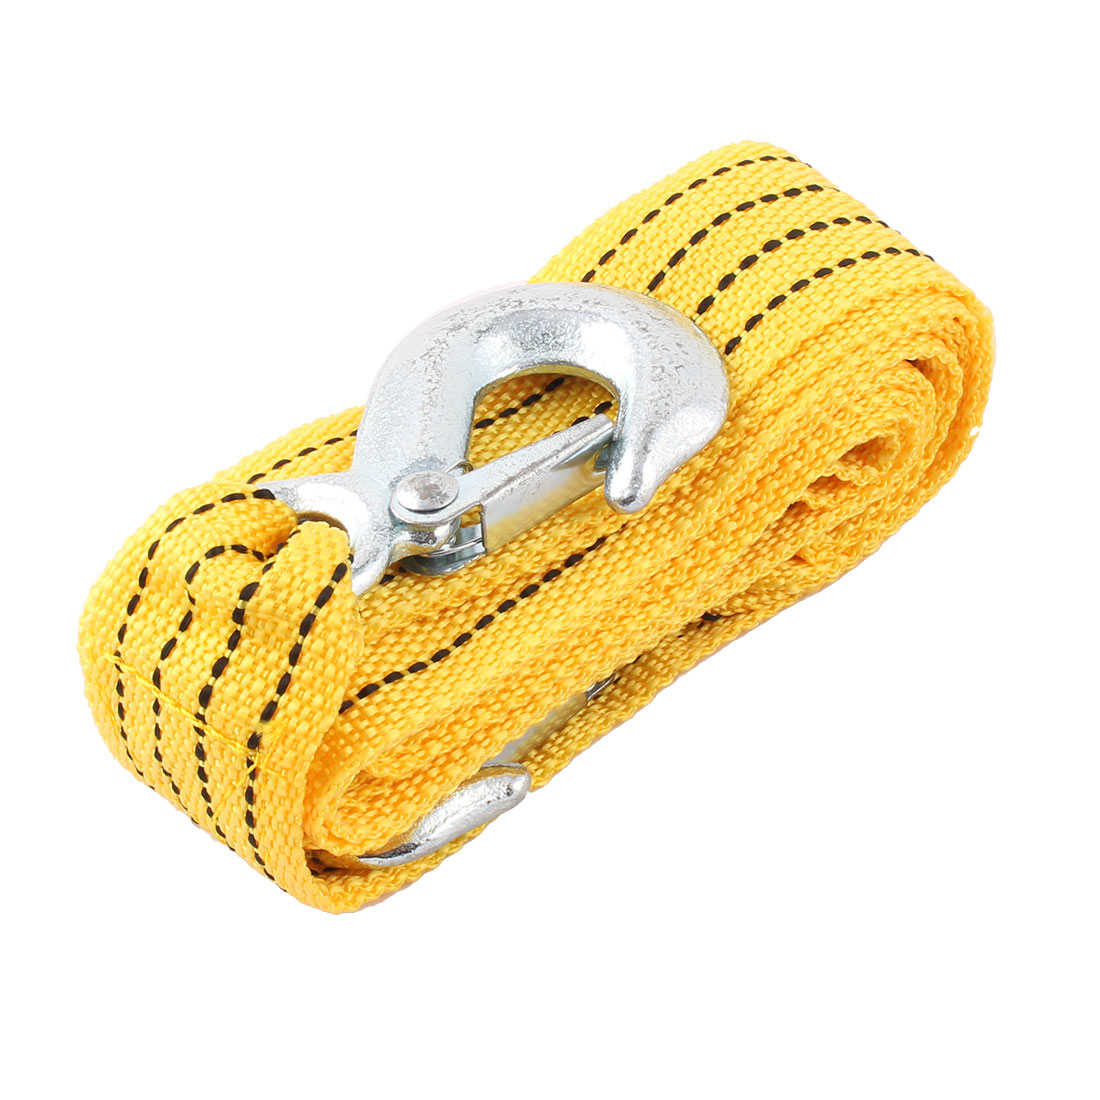 Car Auto Road Emergency Trailer Rope Cord Tow Cable Strap 3 Tons 2.9M Long